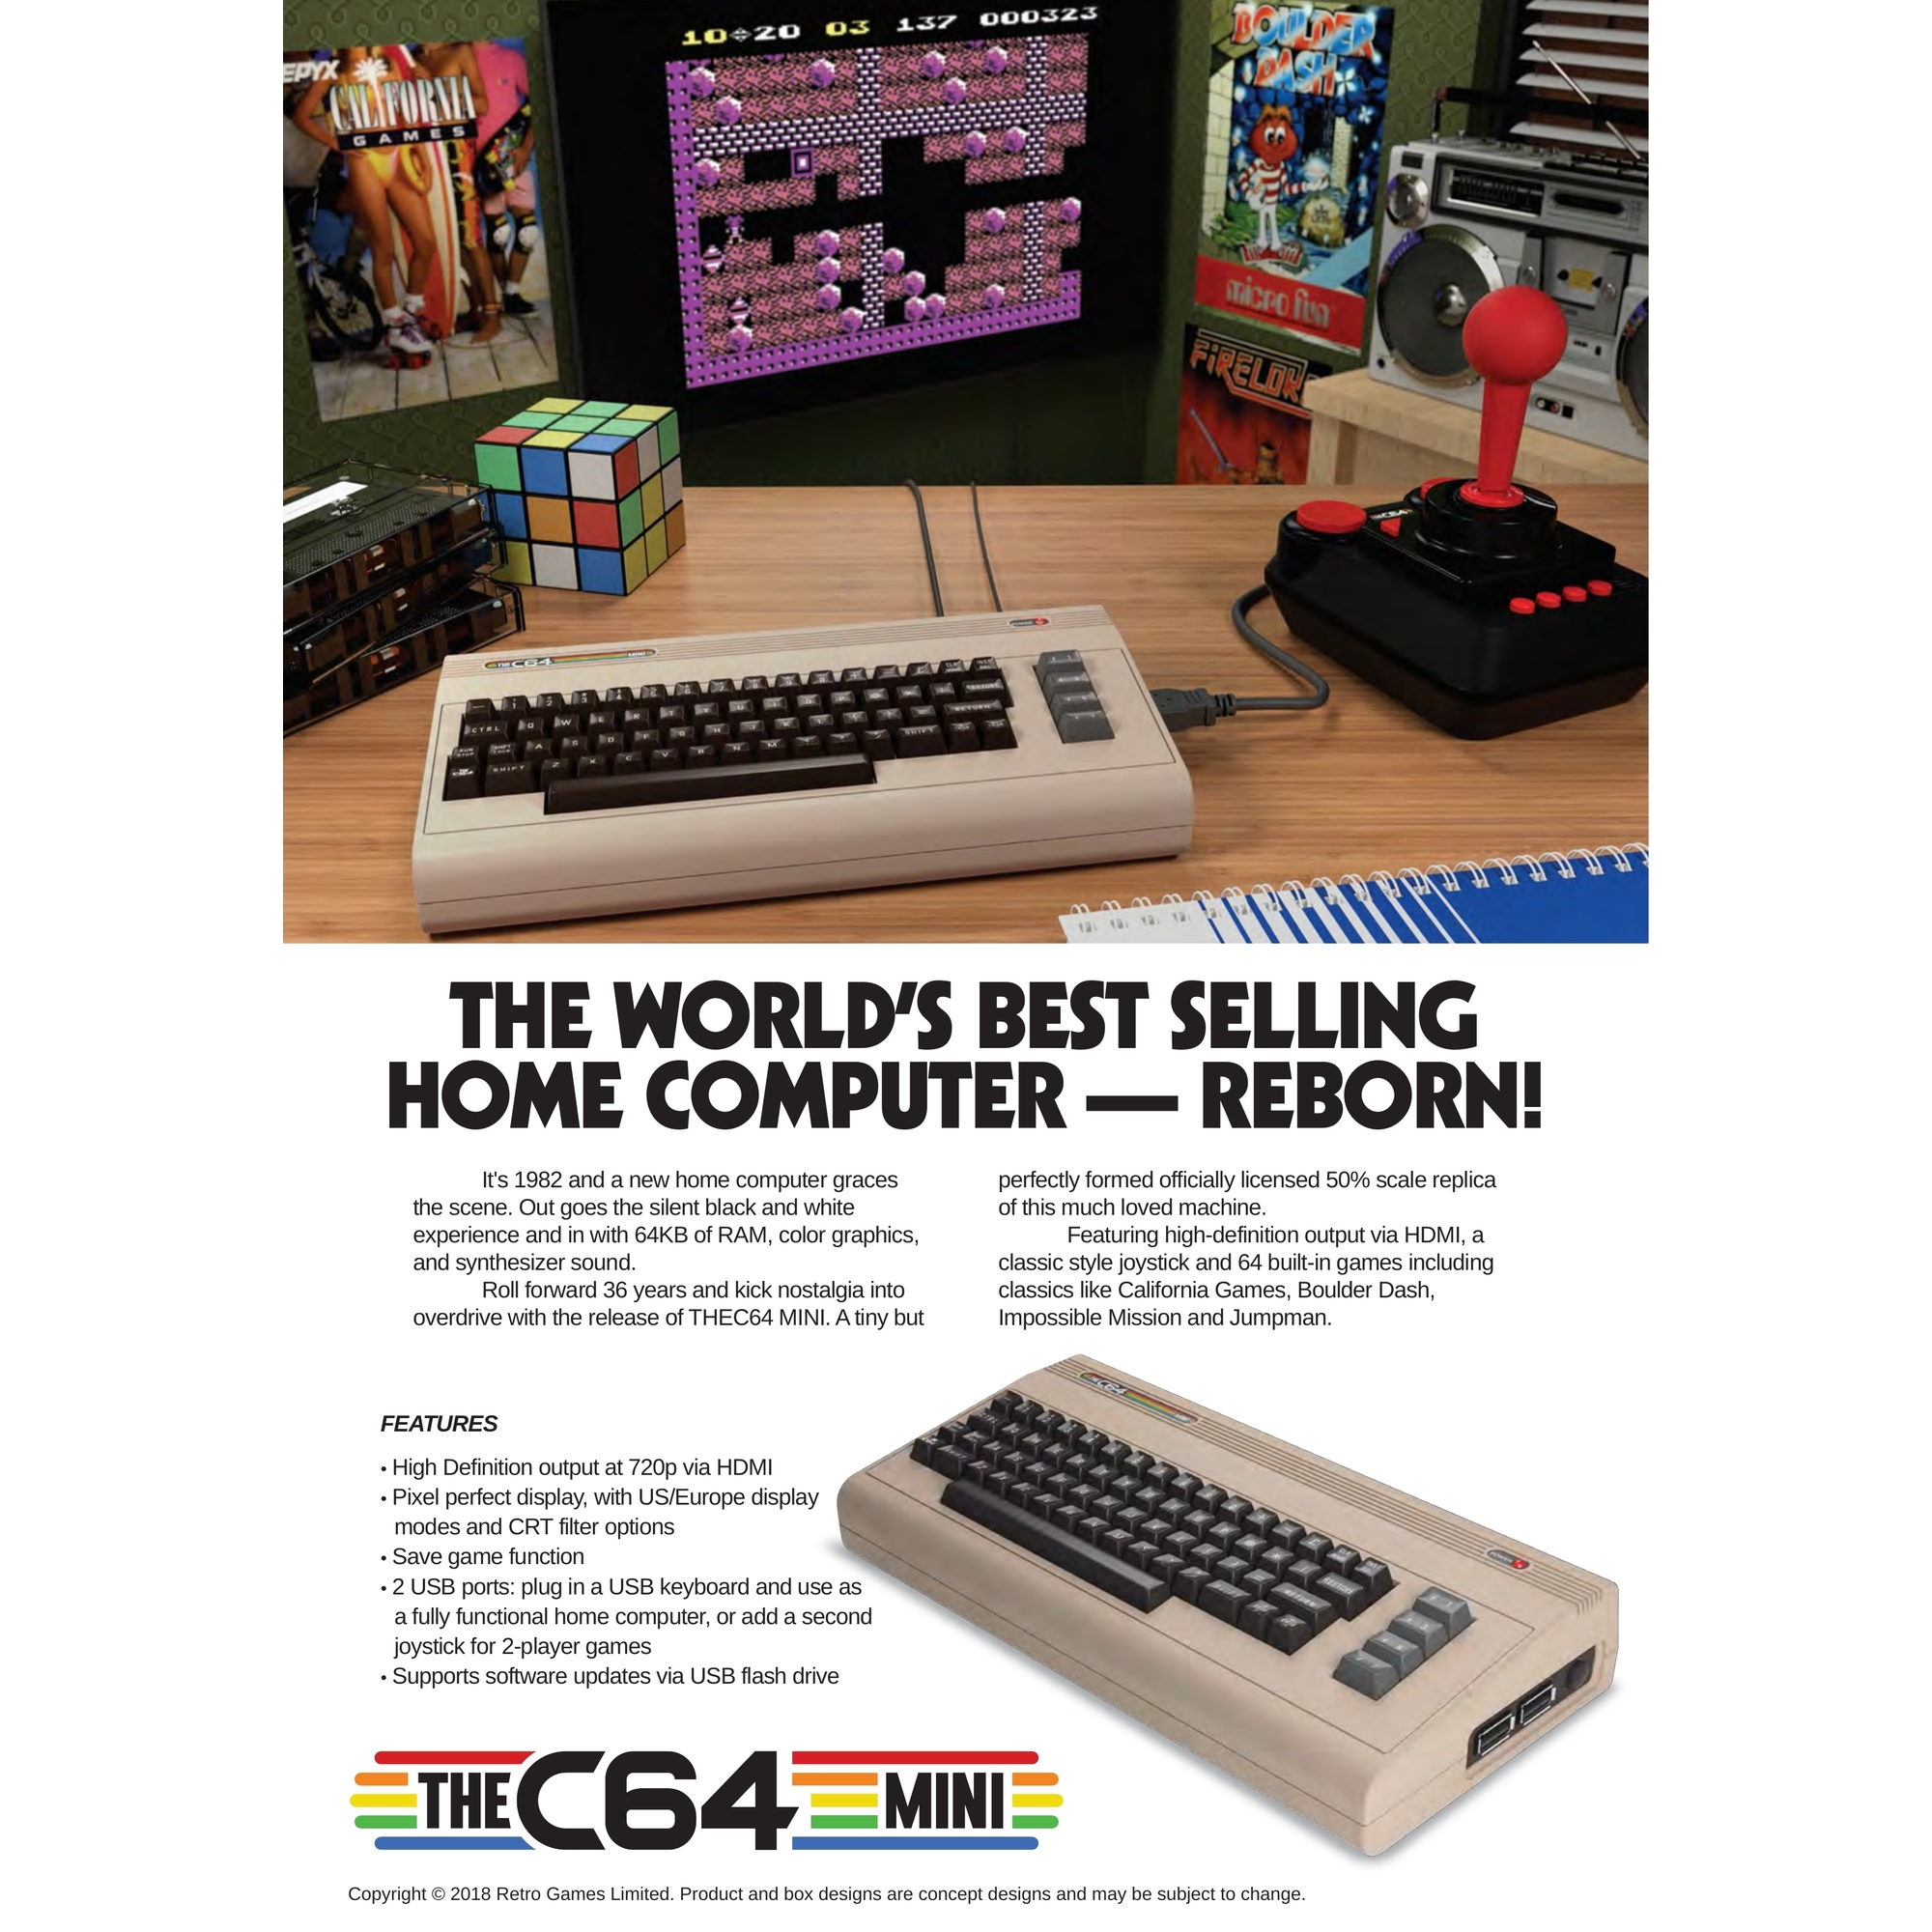 The C64 Mini Console - Pre-orders Open and Limited! - Vast Inc